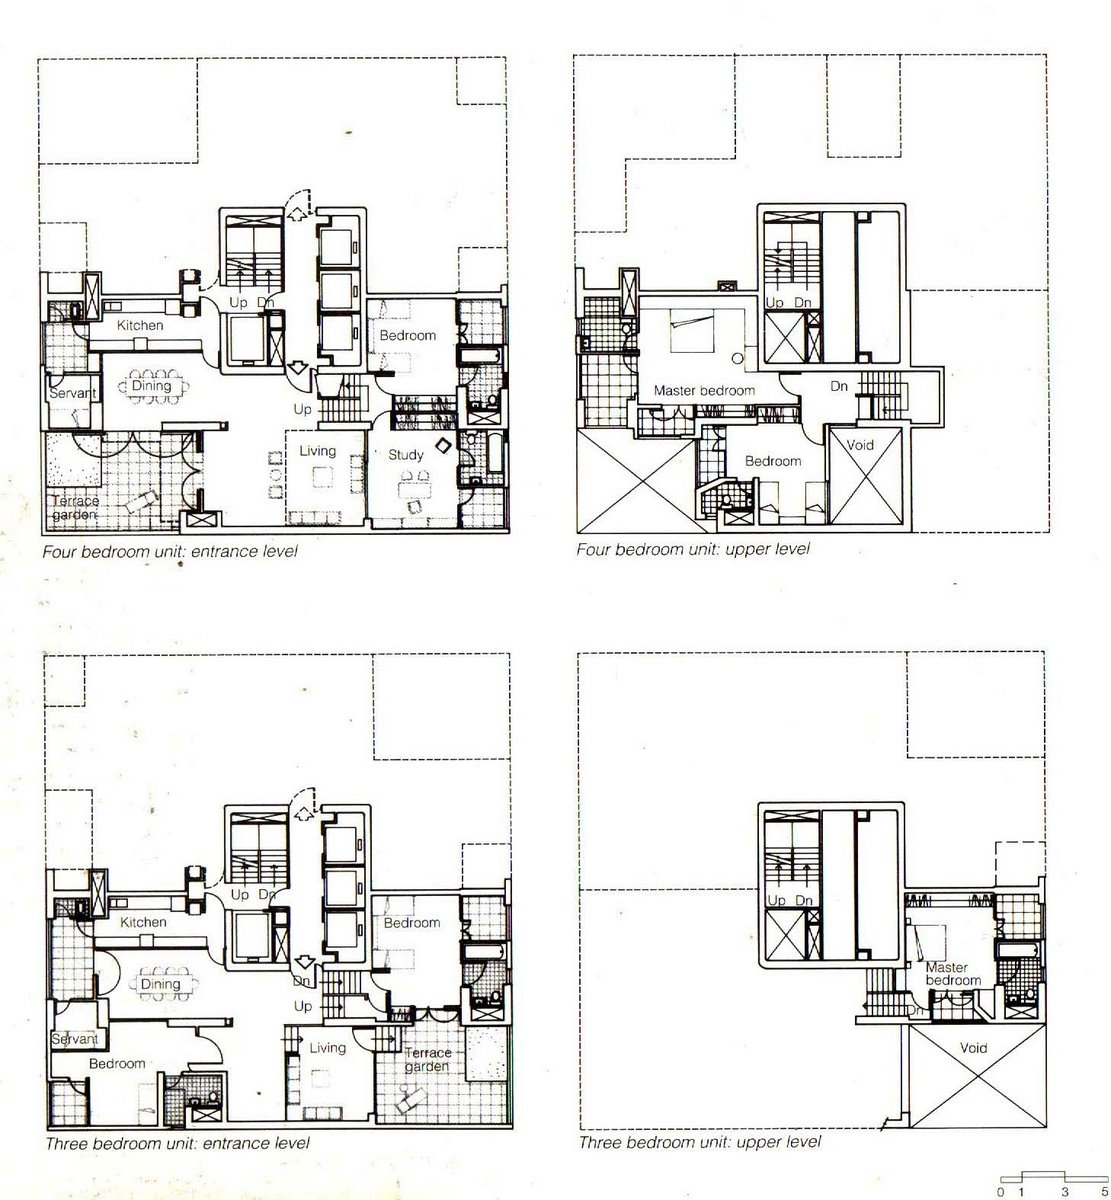 24 unit apartment building plans for Apartment building blueprints